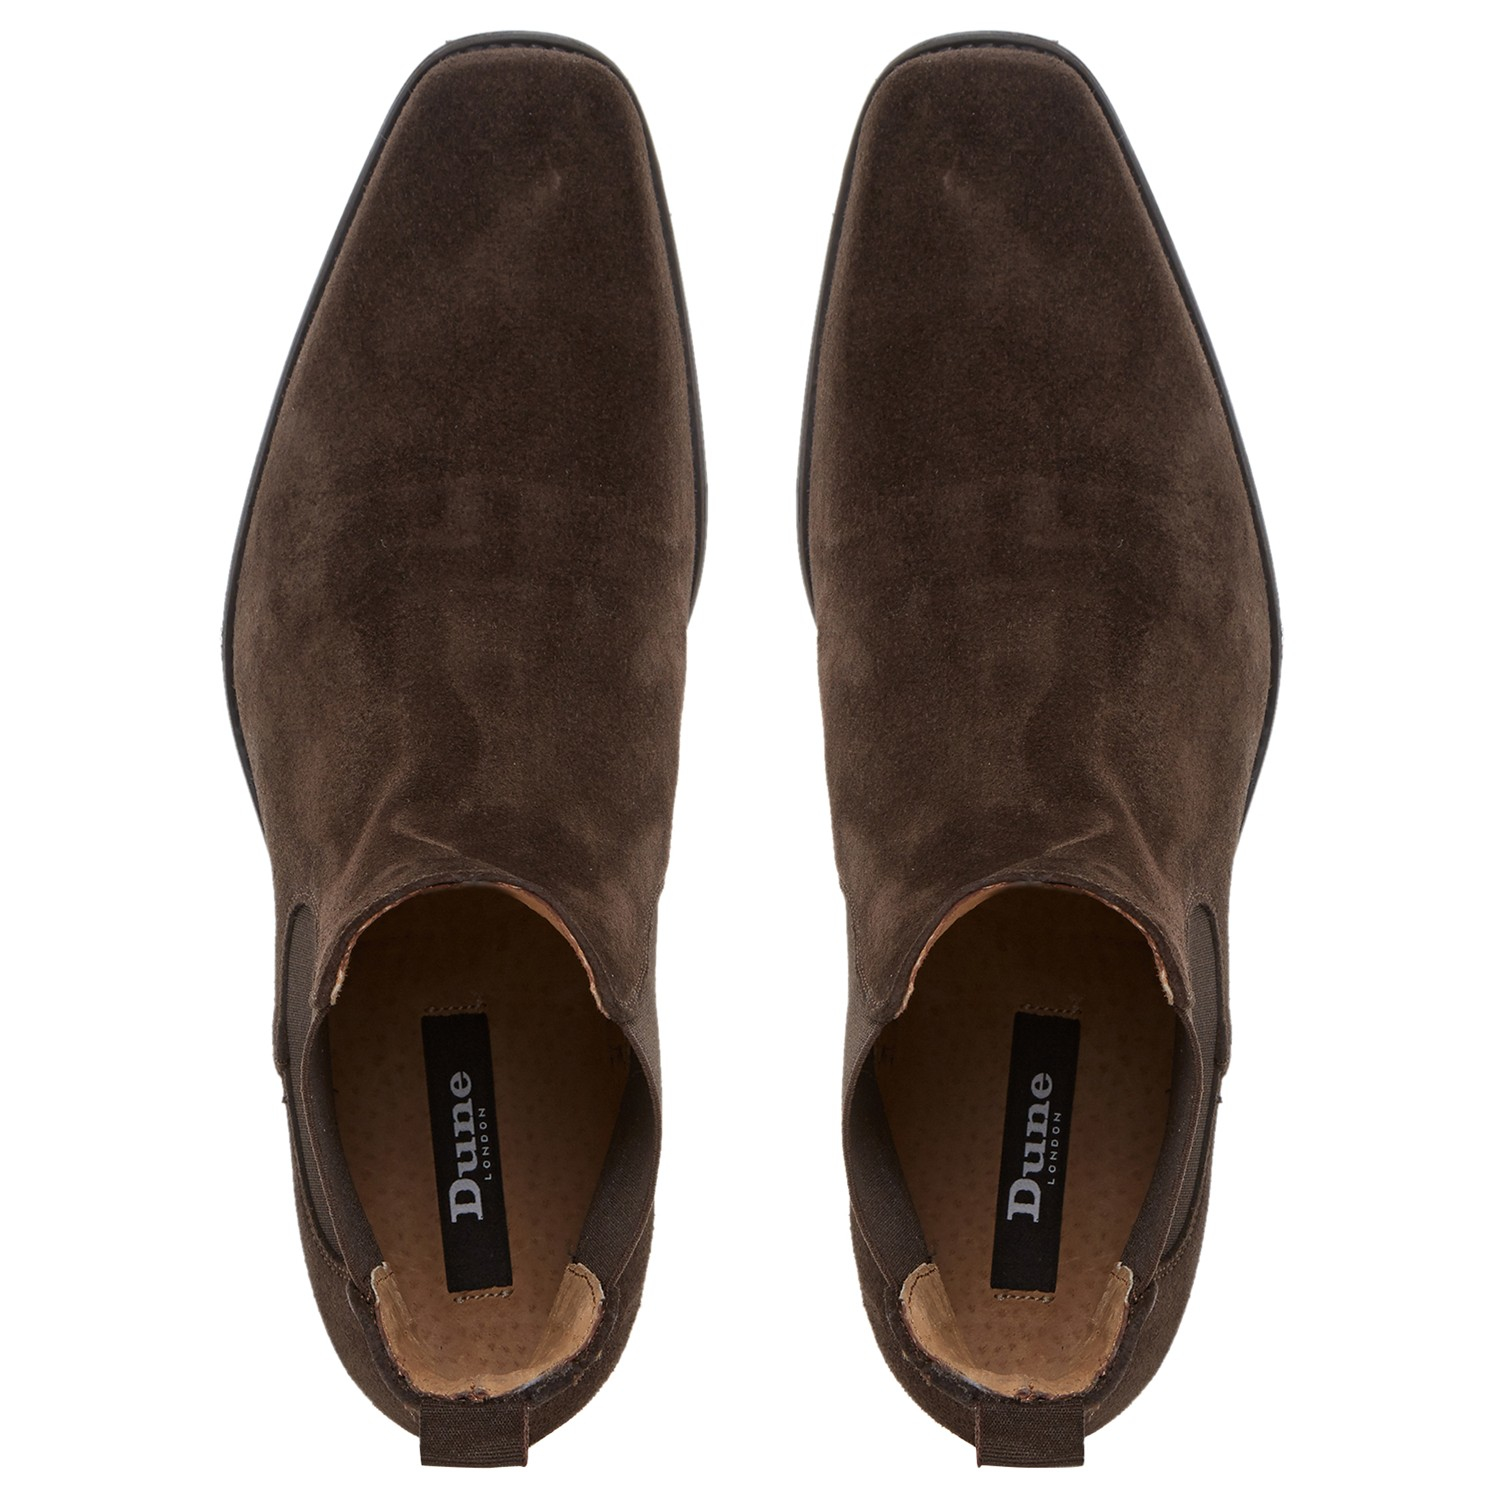 Dune Marky Suede Chelsea Boots In Brown For Men Lyst